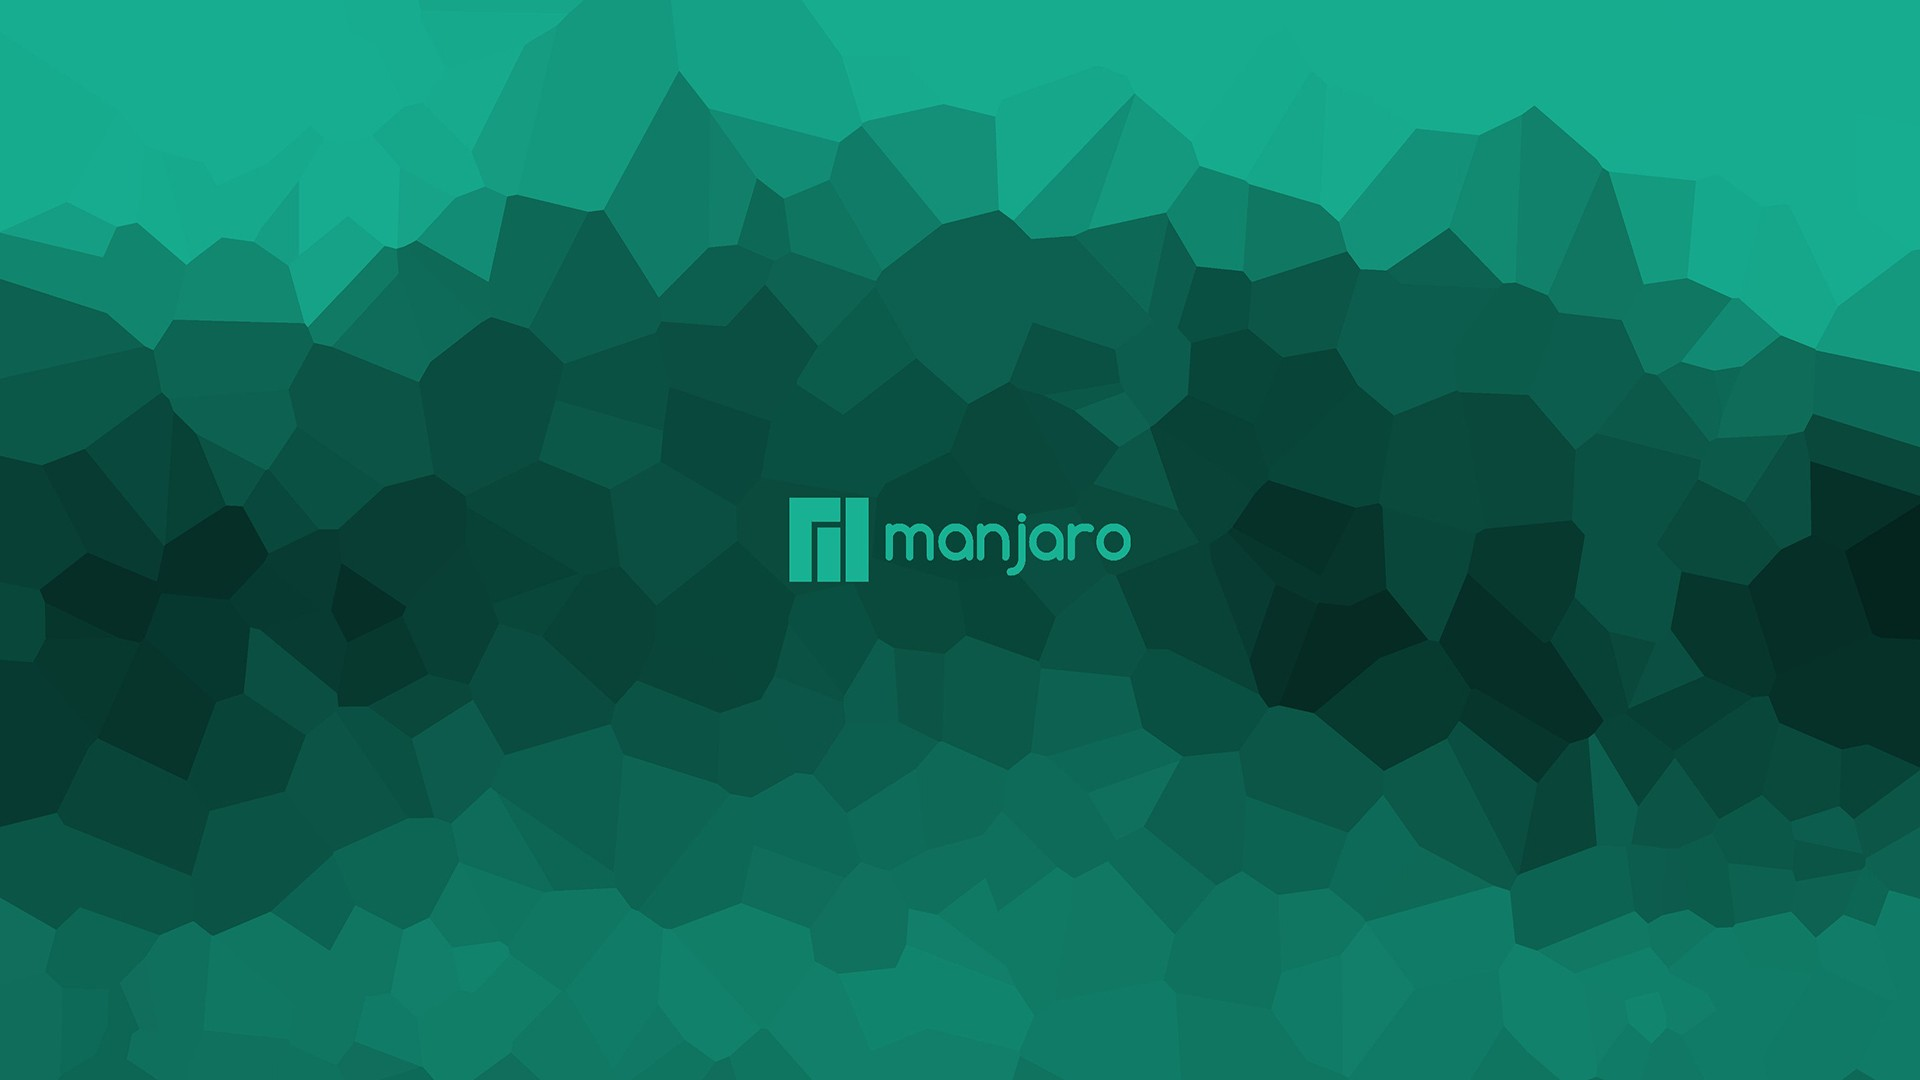 Linux Wallpaper Manjaro Green Damisoft 2021